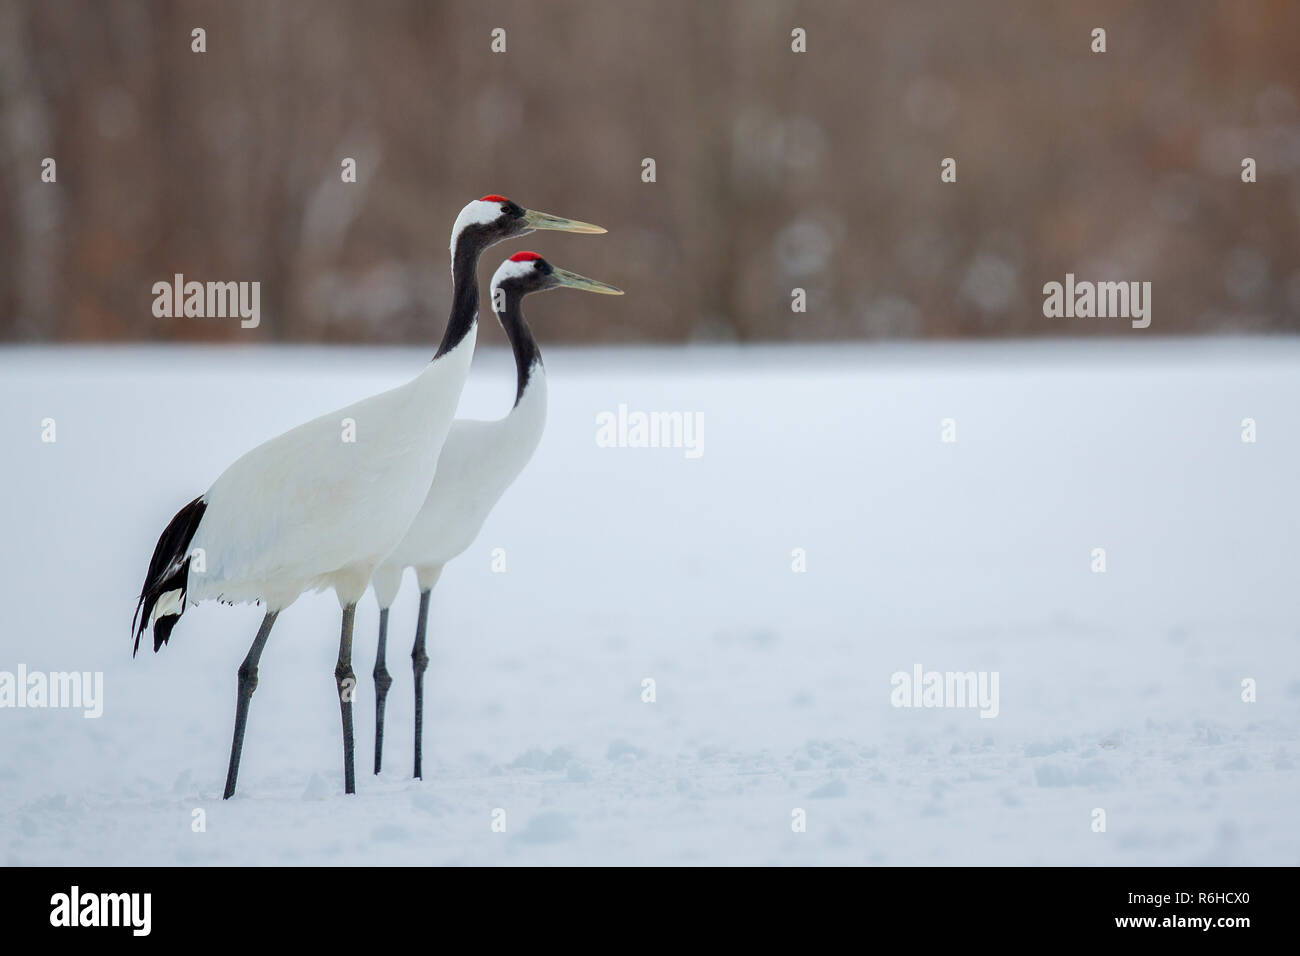 Red-Crowned crane or Grus japonensis or Tancho pair dancing in Hokkaido Japan during winter migration - Stock Image